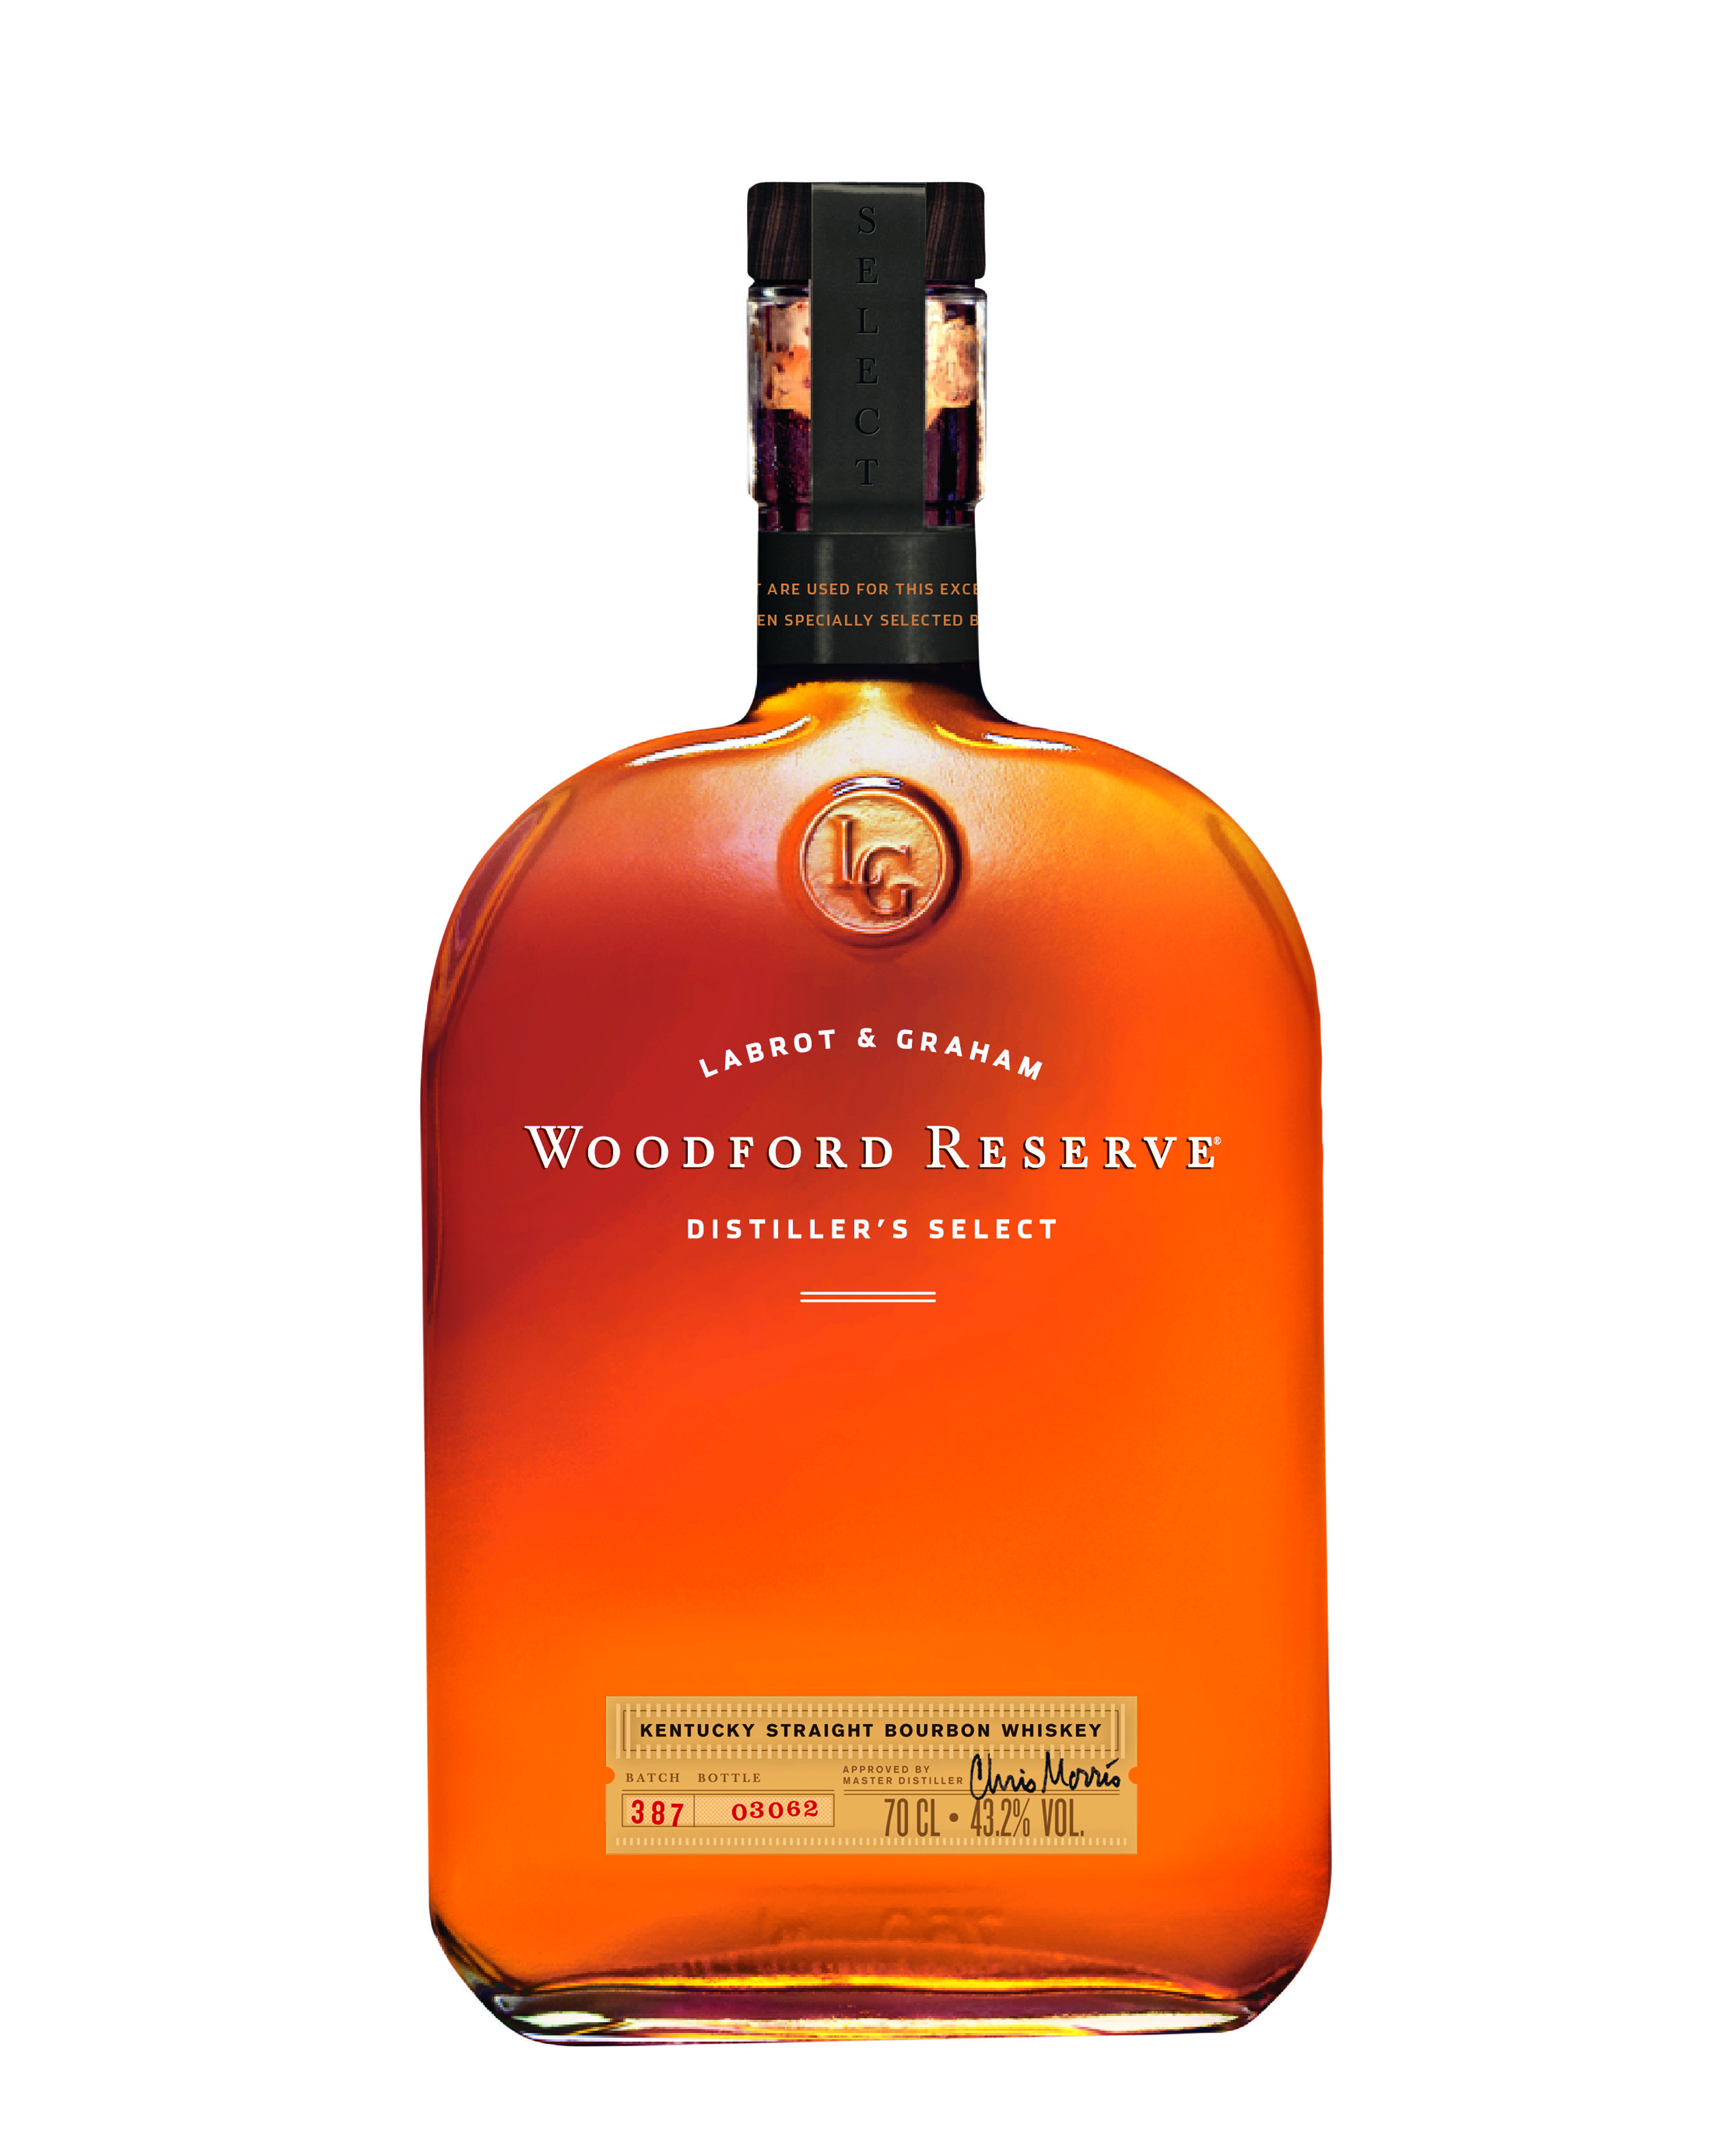 Woodford Reserve Kentucky Straight Bourbon Whiskey Jpg 2 771 3 464 Pixels Whiskey Bourbon Whiskey Kentucky Straight Bourbon Whiskey